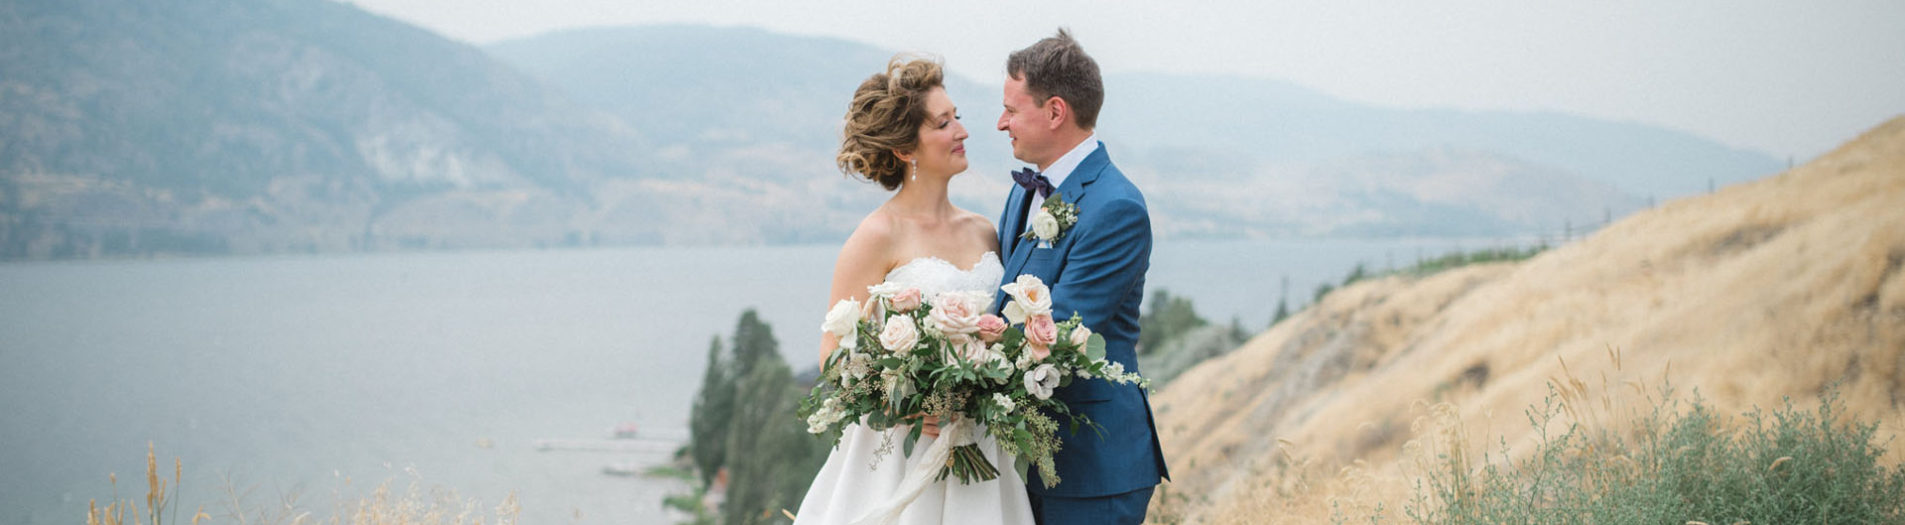 Painted Rock Winery Wedding | Penticton Lakeside Resort | Taryn + Mike Wedding Film